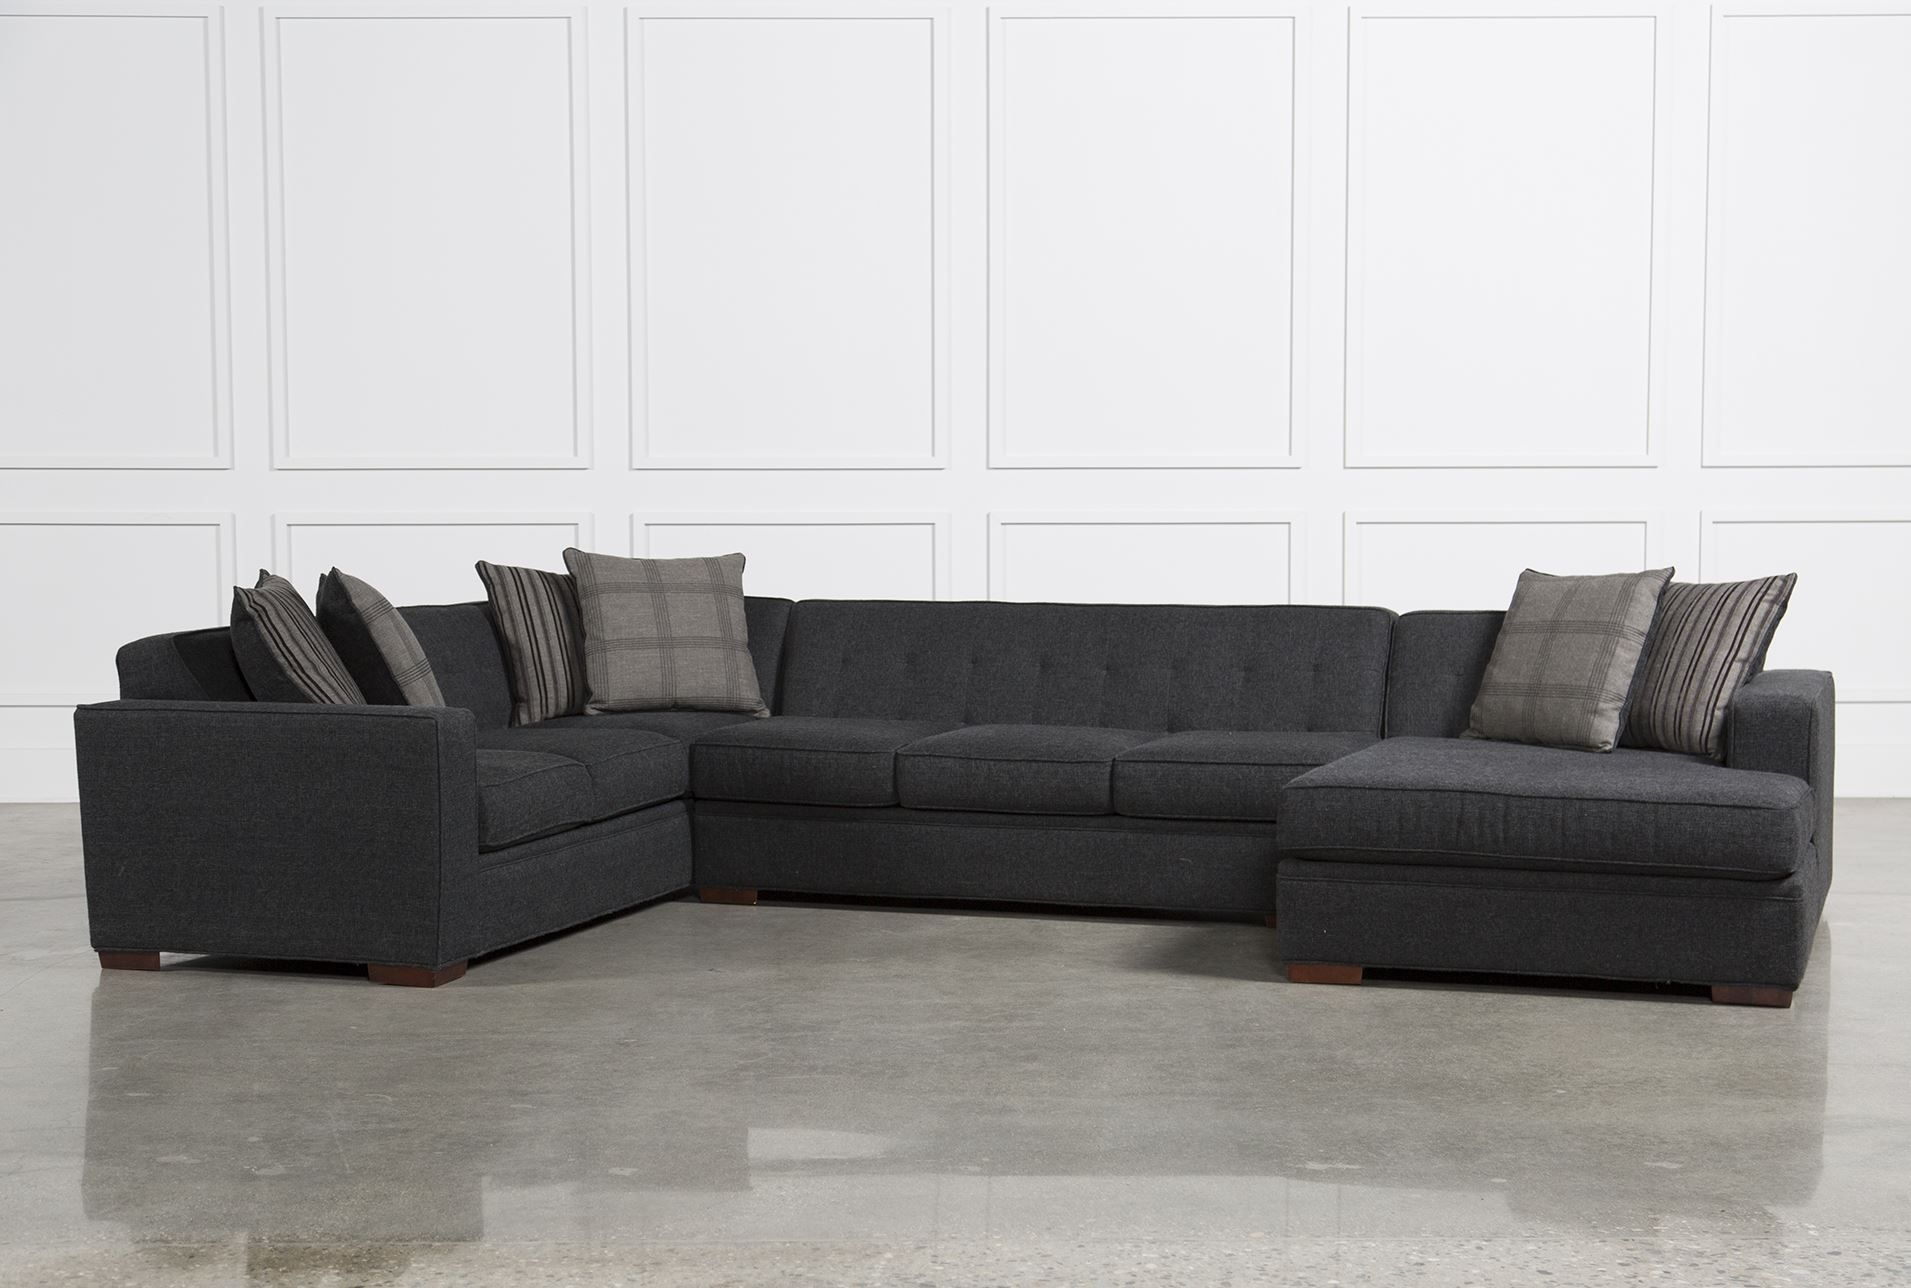 Ello Piece Sectional Optional Right Chaise Option Lighter Living pertaining to Adeline 3 Piece Sectionals (Image 12 of 30)